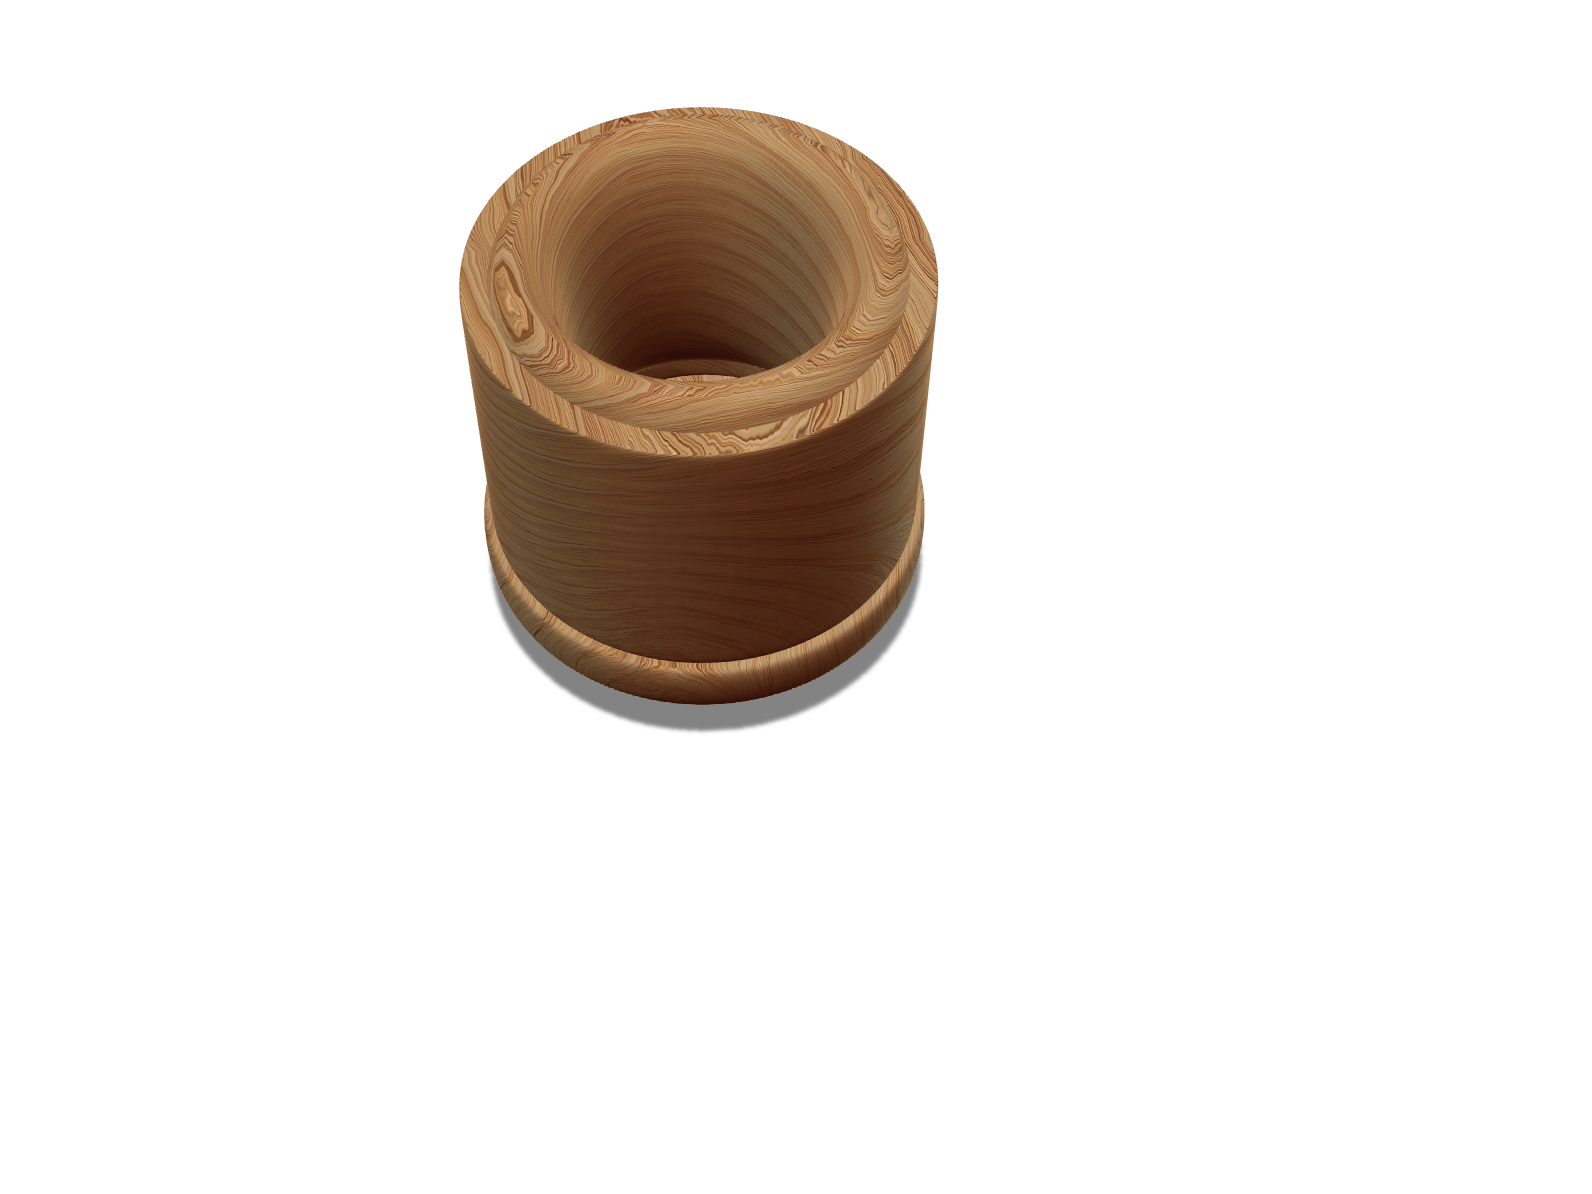 Ugly wood cup - 3D design by Trainb0y Nov 9, 2017